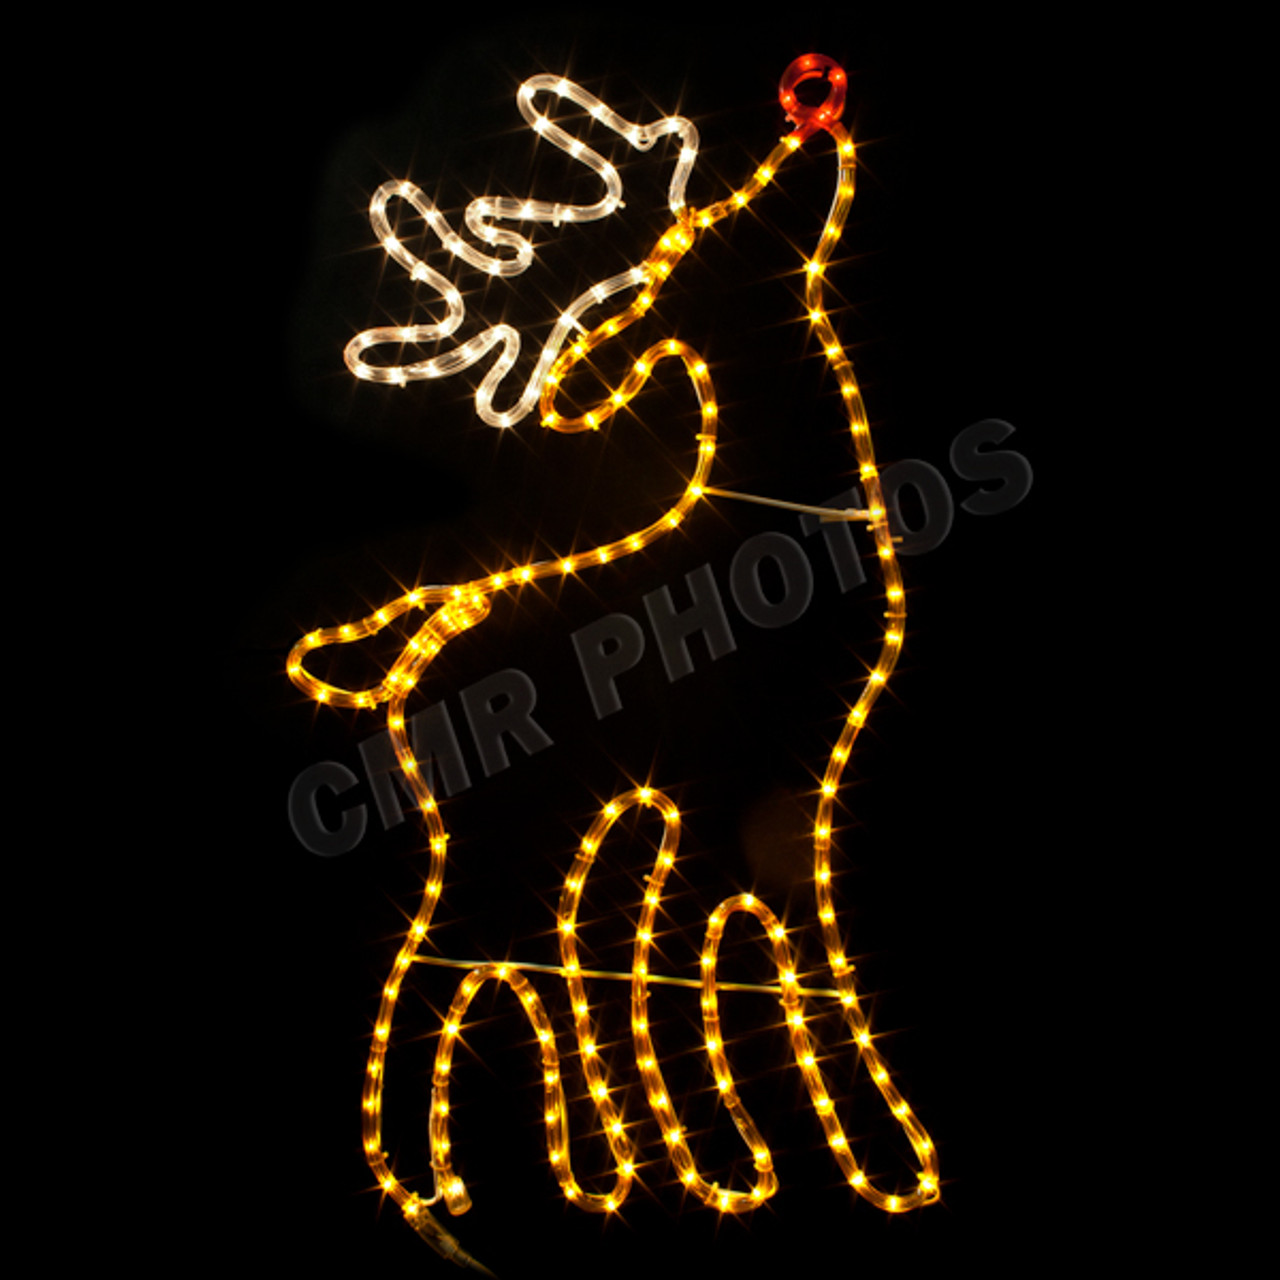 rudolph the red nosed reindeer rope light motif silhouette display 100modeer